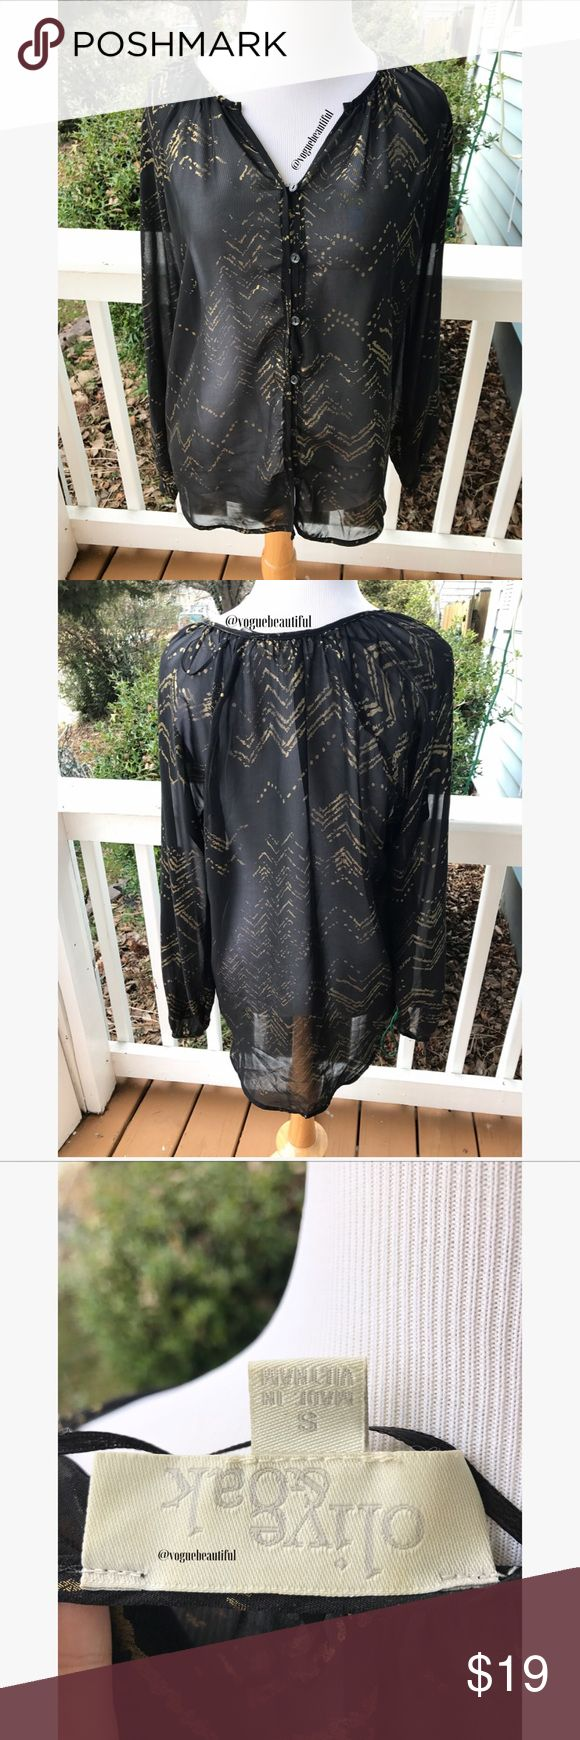 Olive & Oak Sheer Black & Gold Long Sleeve Super cute Olive & Oak sheer black & gold long sleeve top - size small - perfect with a cami underneath and a pair of jeans -  excellent condition with no stains -lightweight 100% polyester - !!NO TRADES!! Olive & Oak Tops Blouses